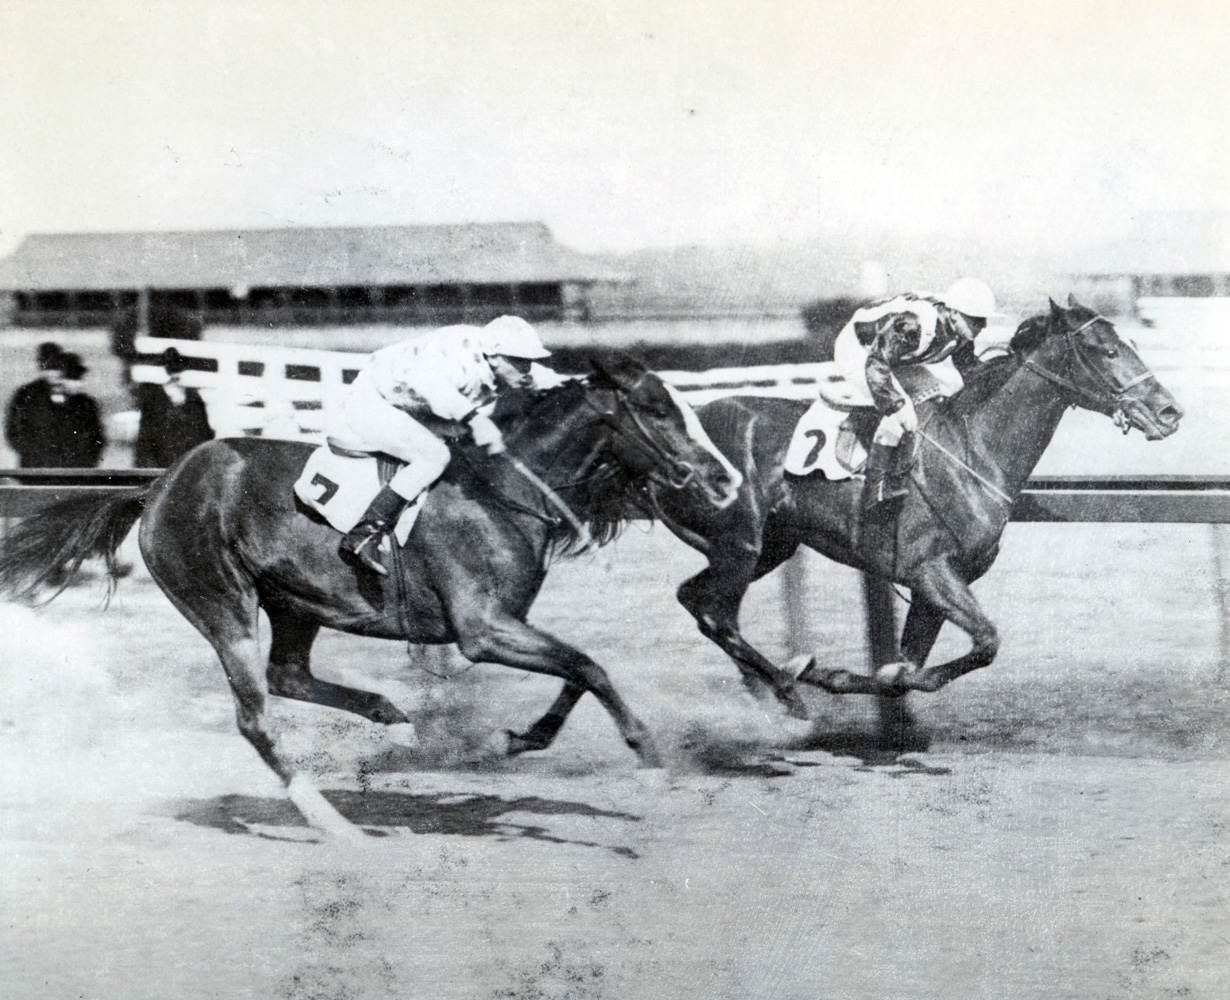 Walter Miller and Frizette winning a race at Aqueduct (Museum Collection)